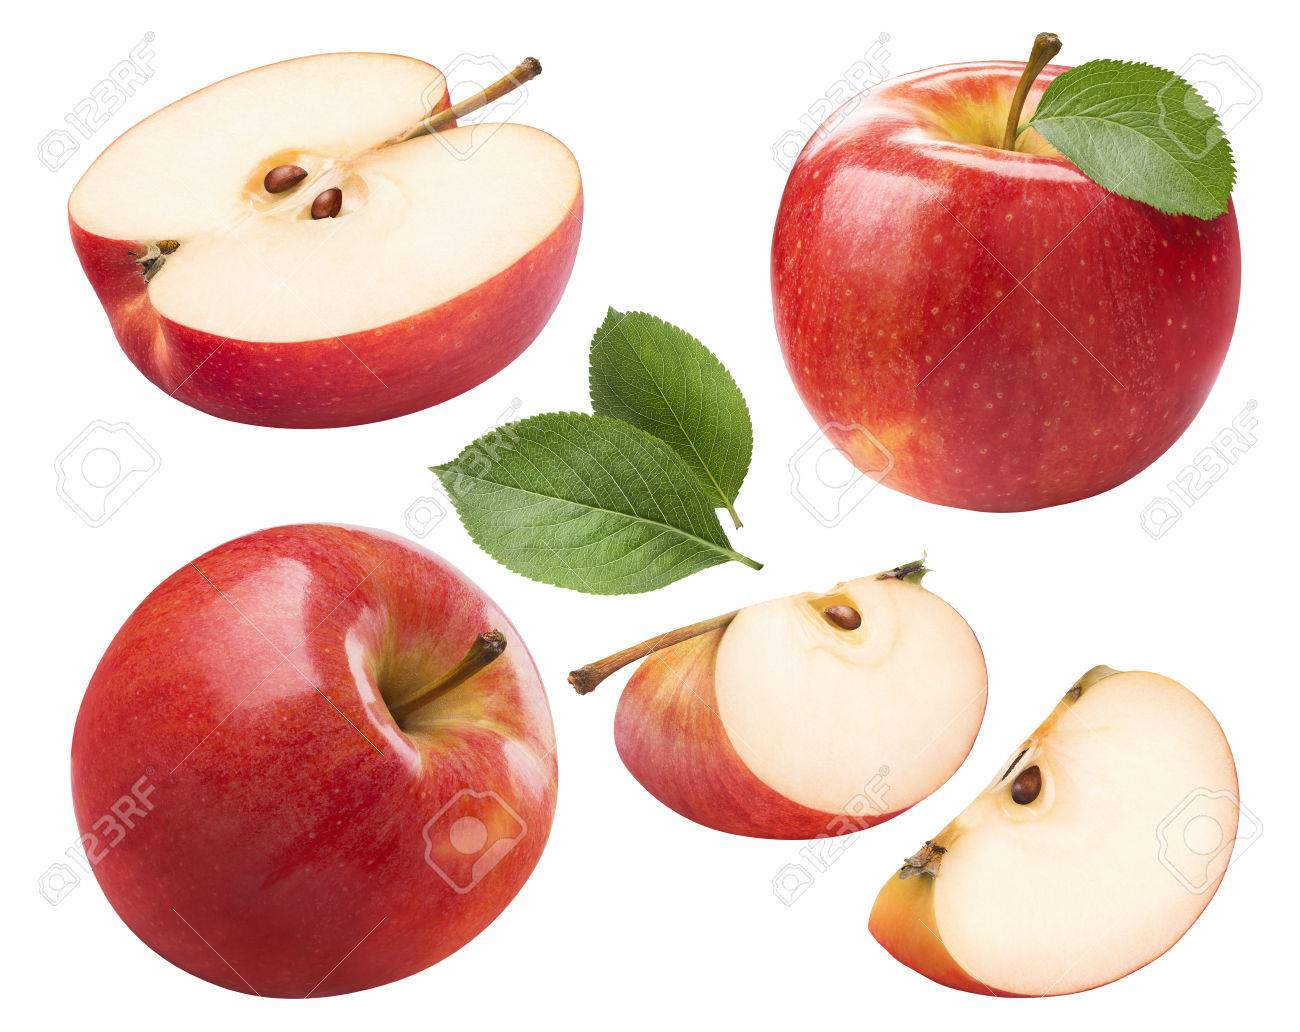 Red apple whole pieces set isolated on white background as package design element - 67178305